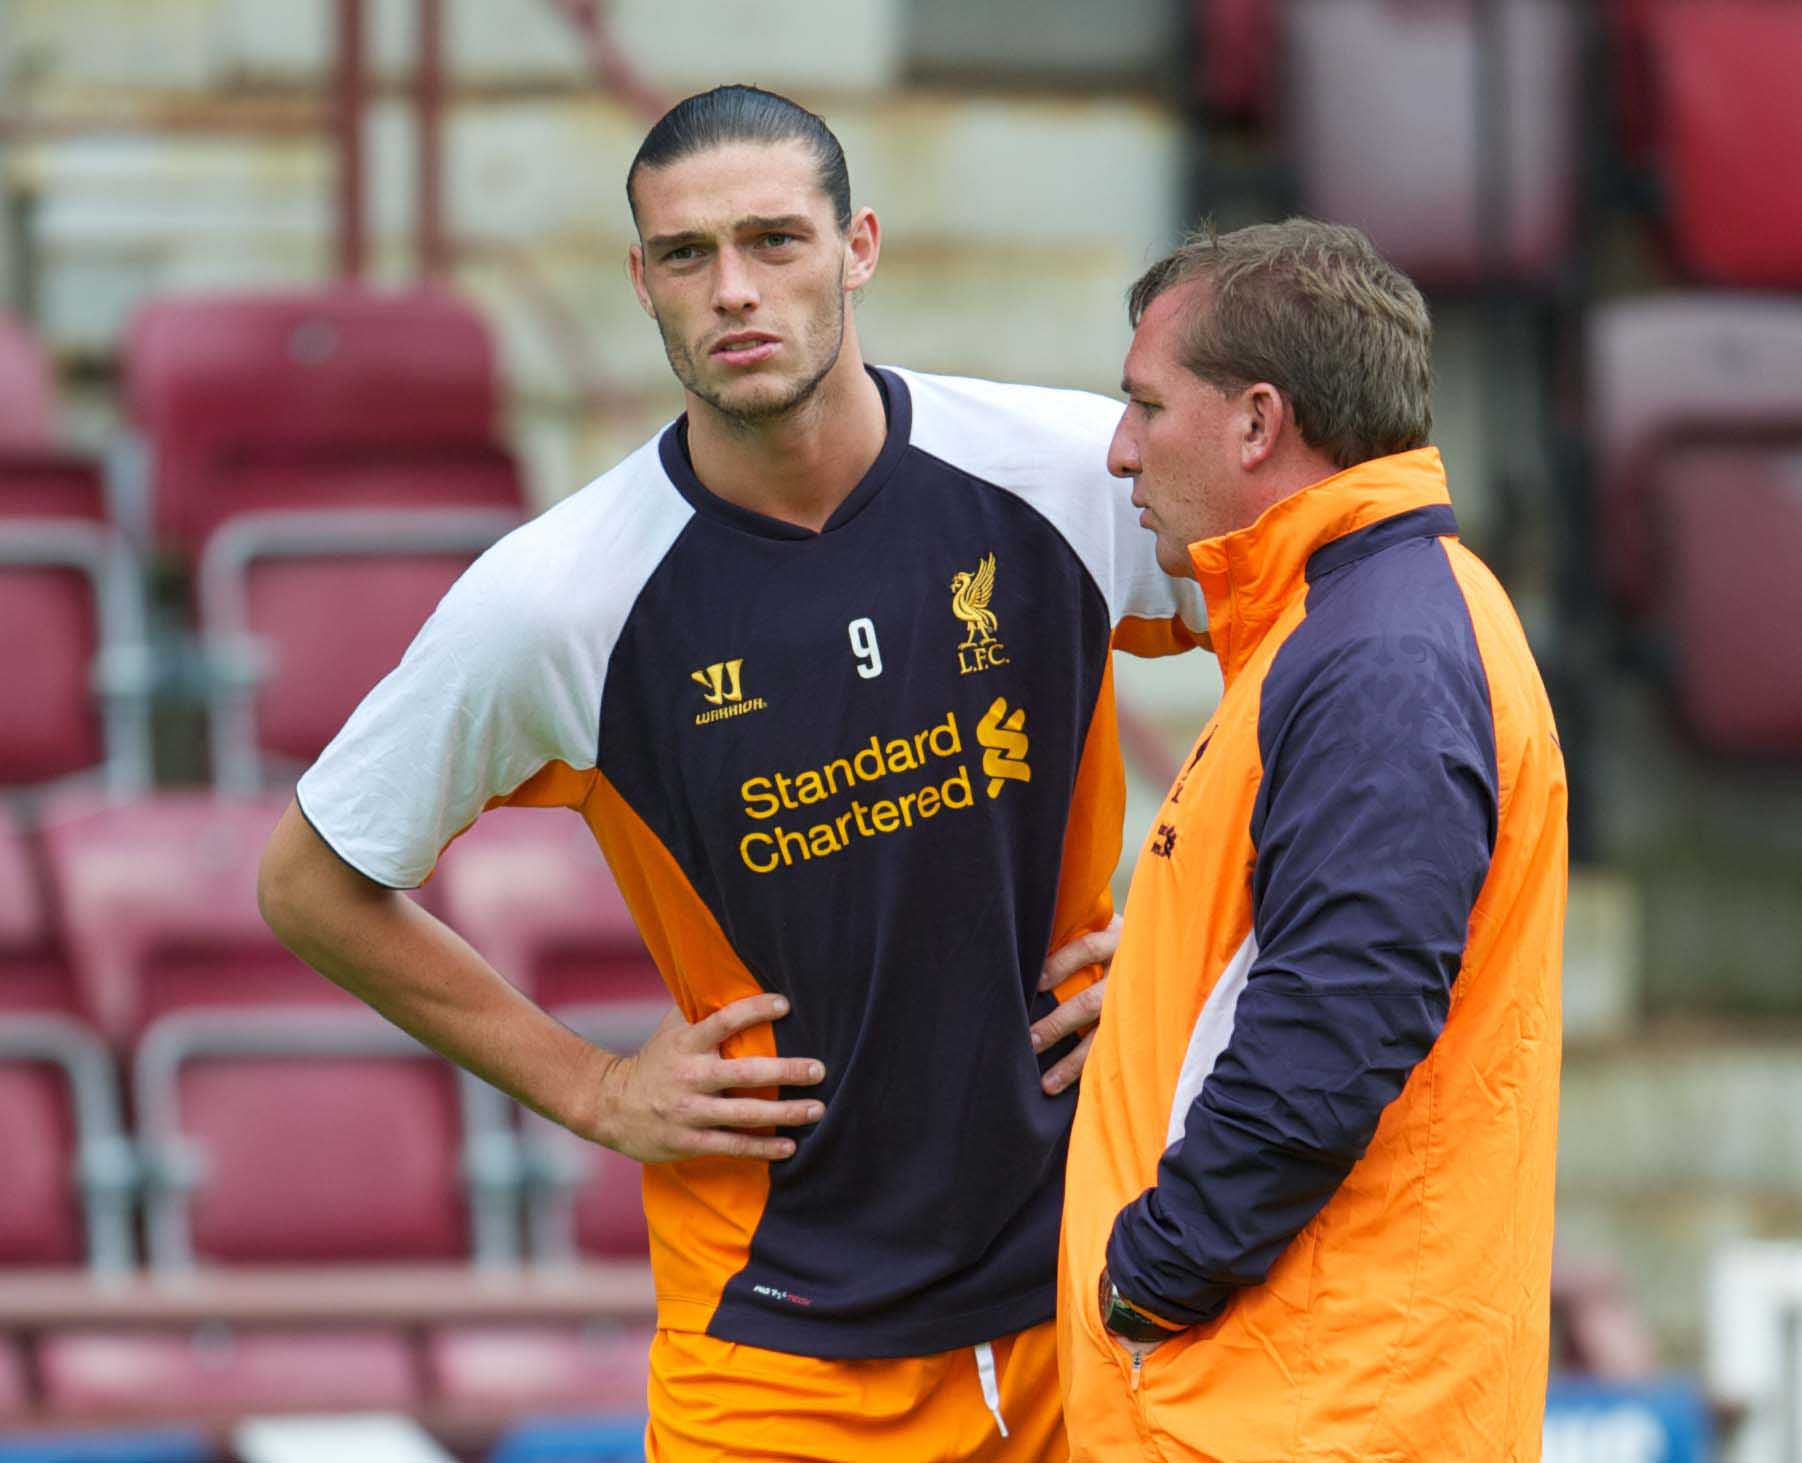 BRENDAN RODGERS AND ANDY CARROLL: THE LYING GAME